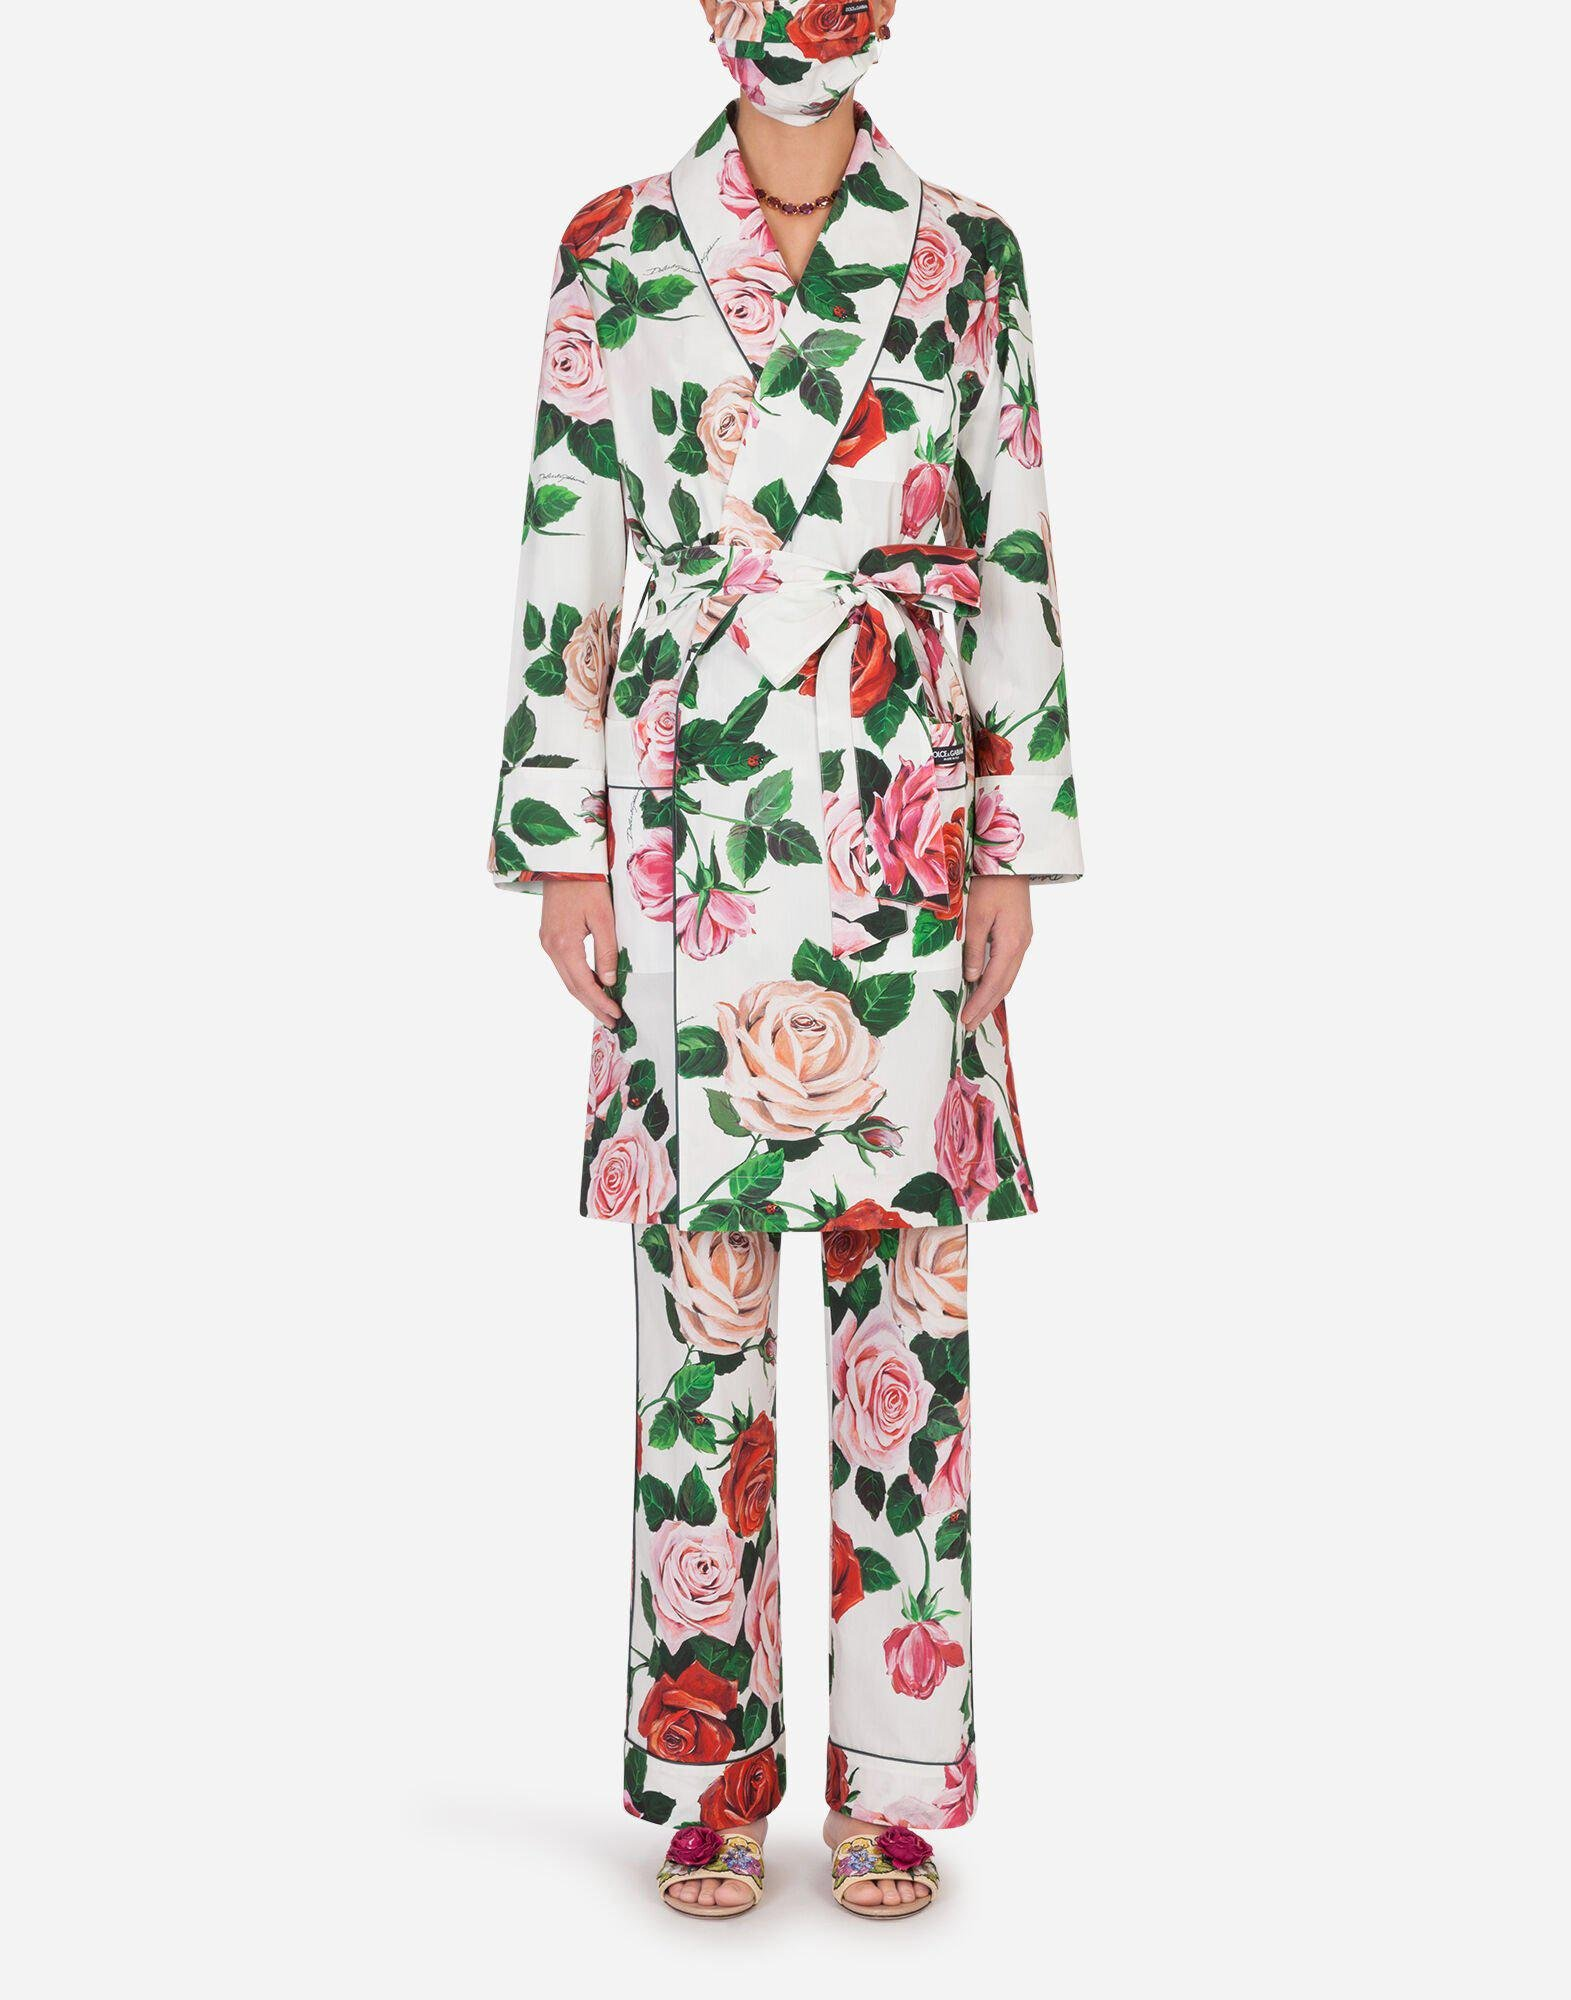 Rose-print robe with matching face mask